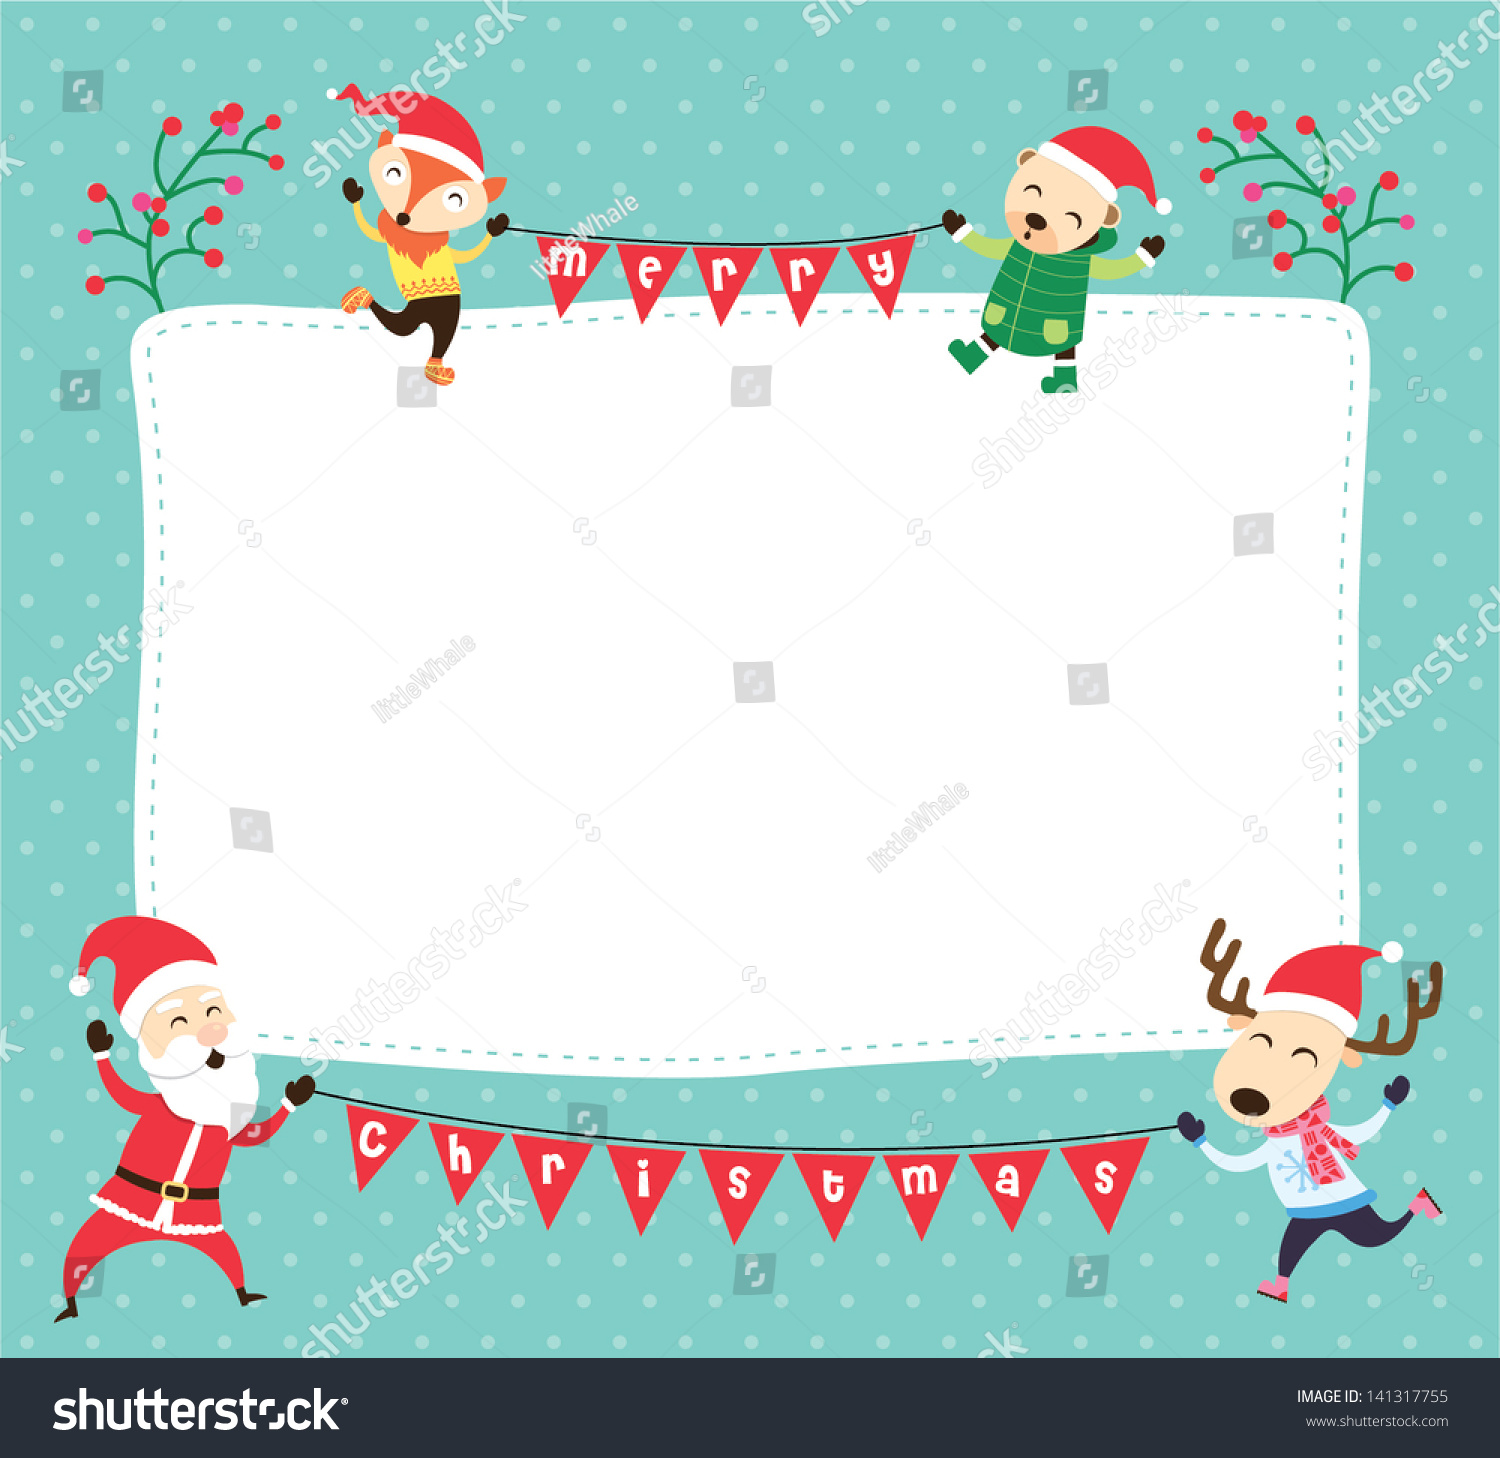 blank template christmas greetings card postcard stock vector 141317755 shutterstock. Black Bedroom Furniture Sets. Home Design Ideas